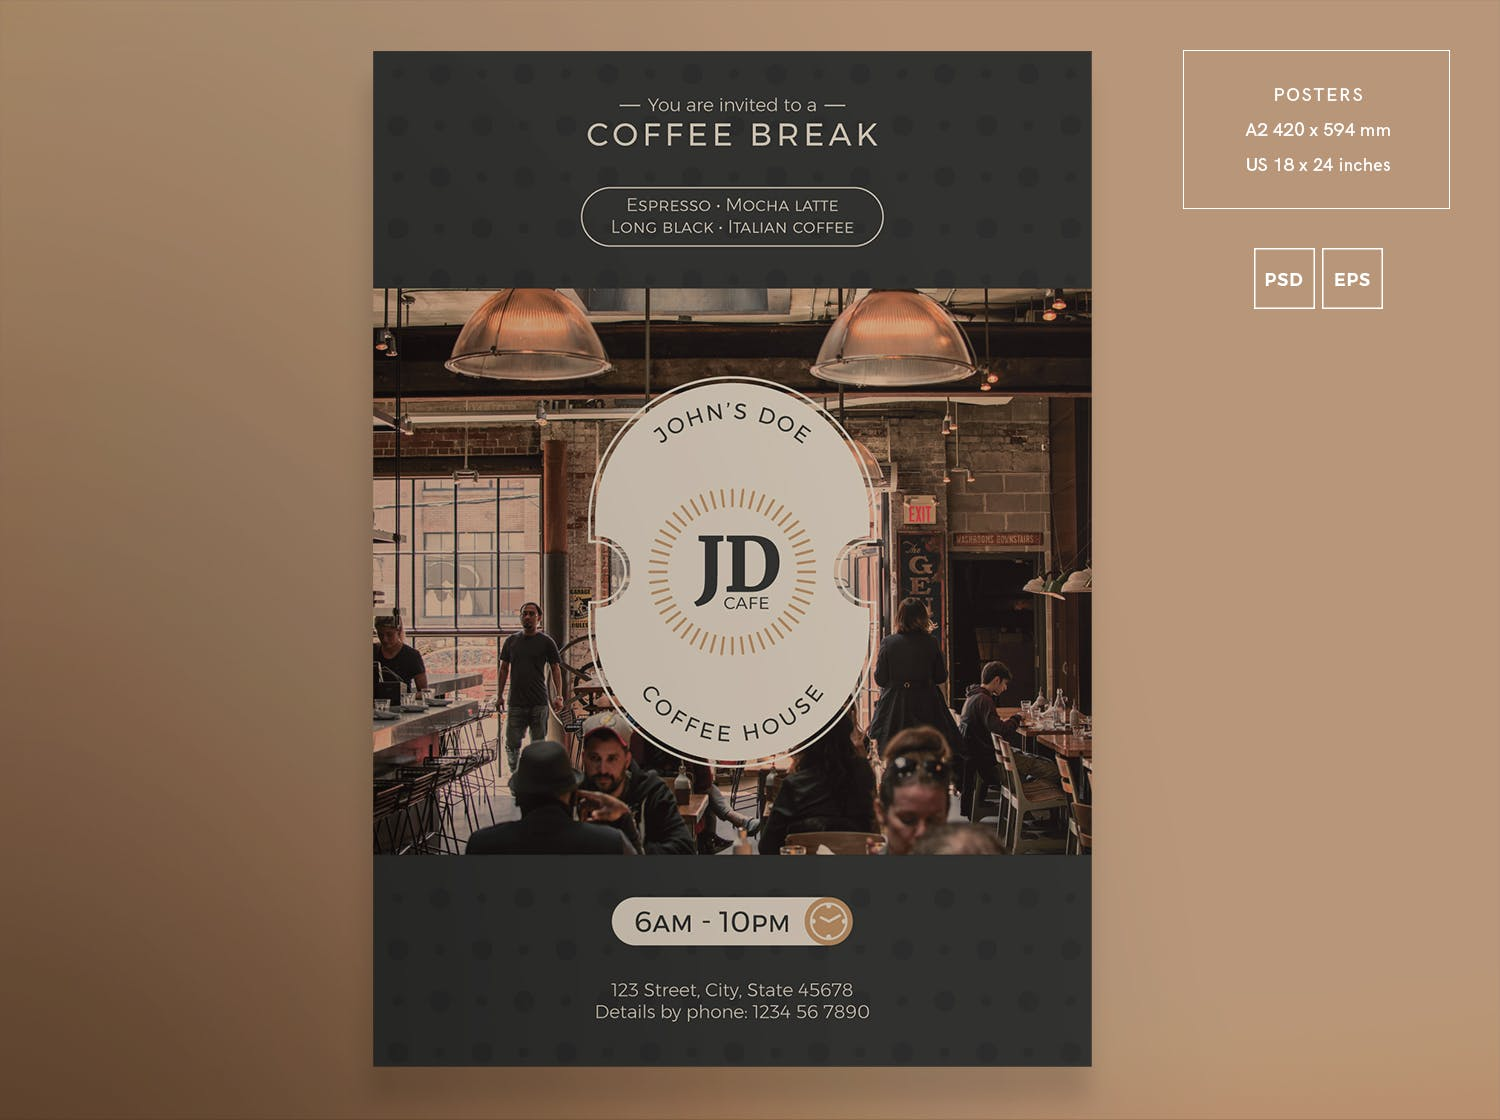 咖啡酒吧传单和海报模板Coffee Bar Flyer and Poster Template